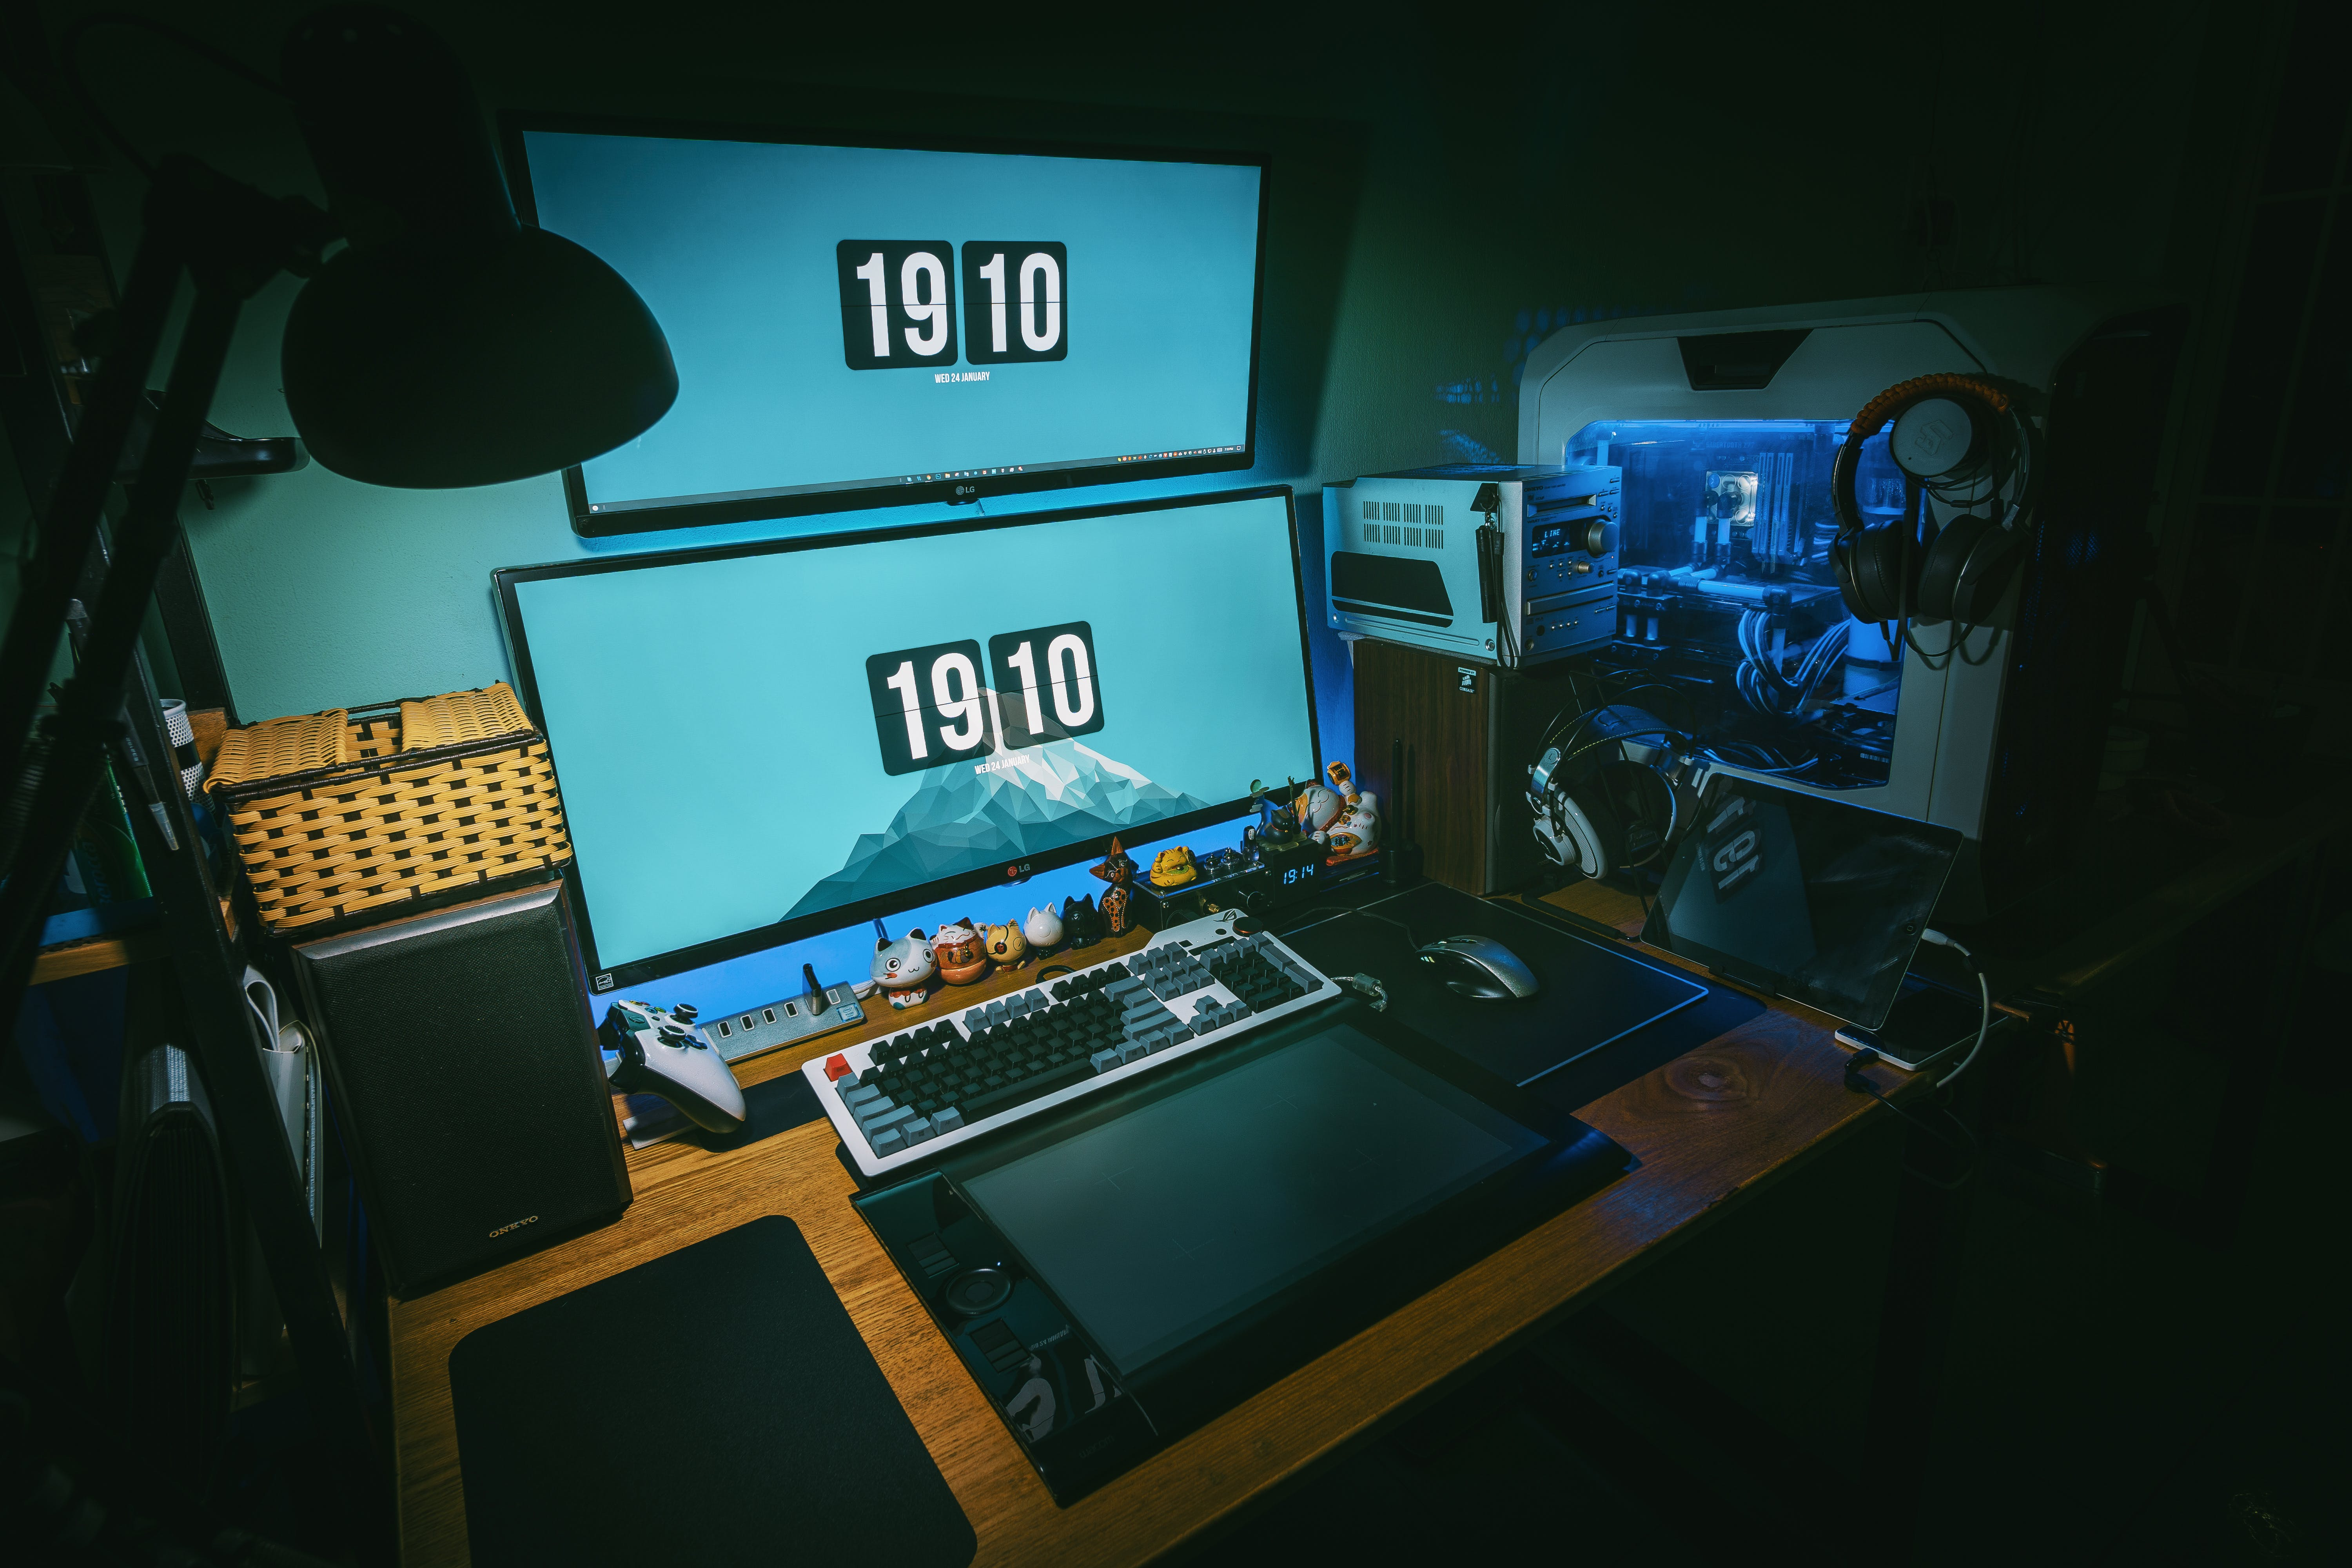 Low-light Photography of Computer Gaming Rig Set